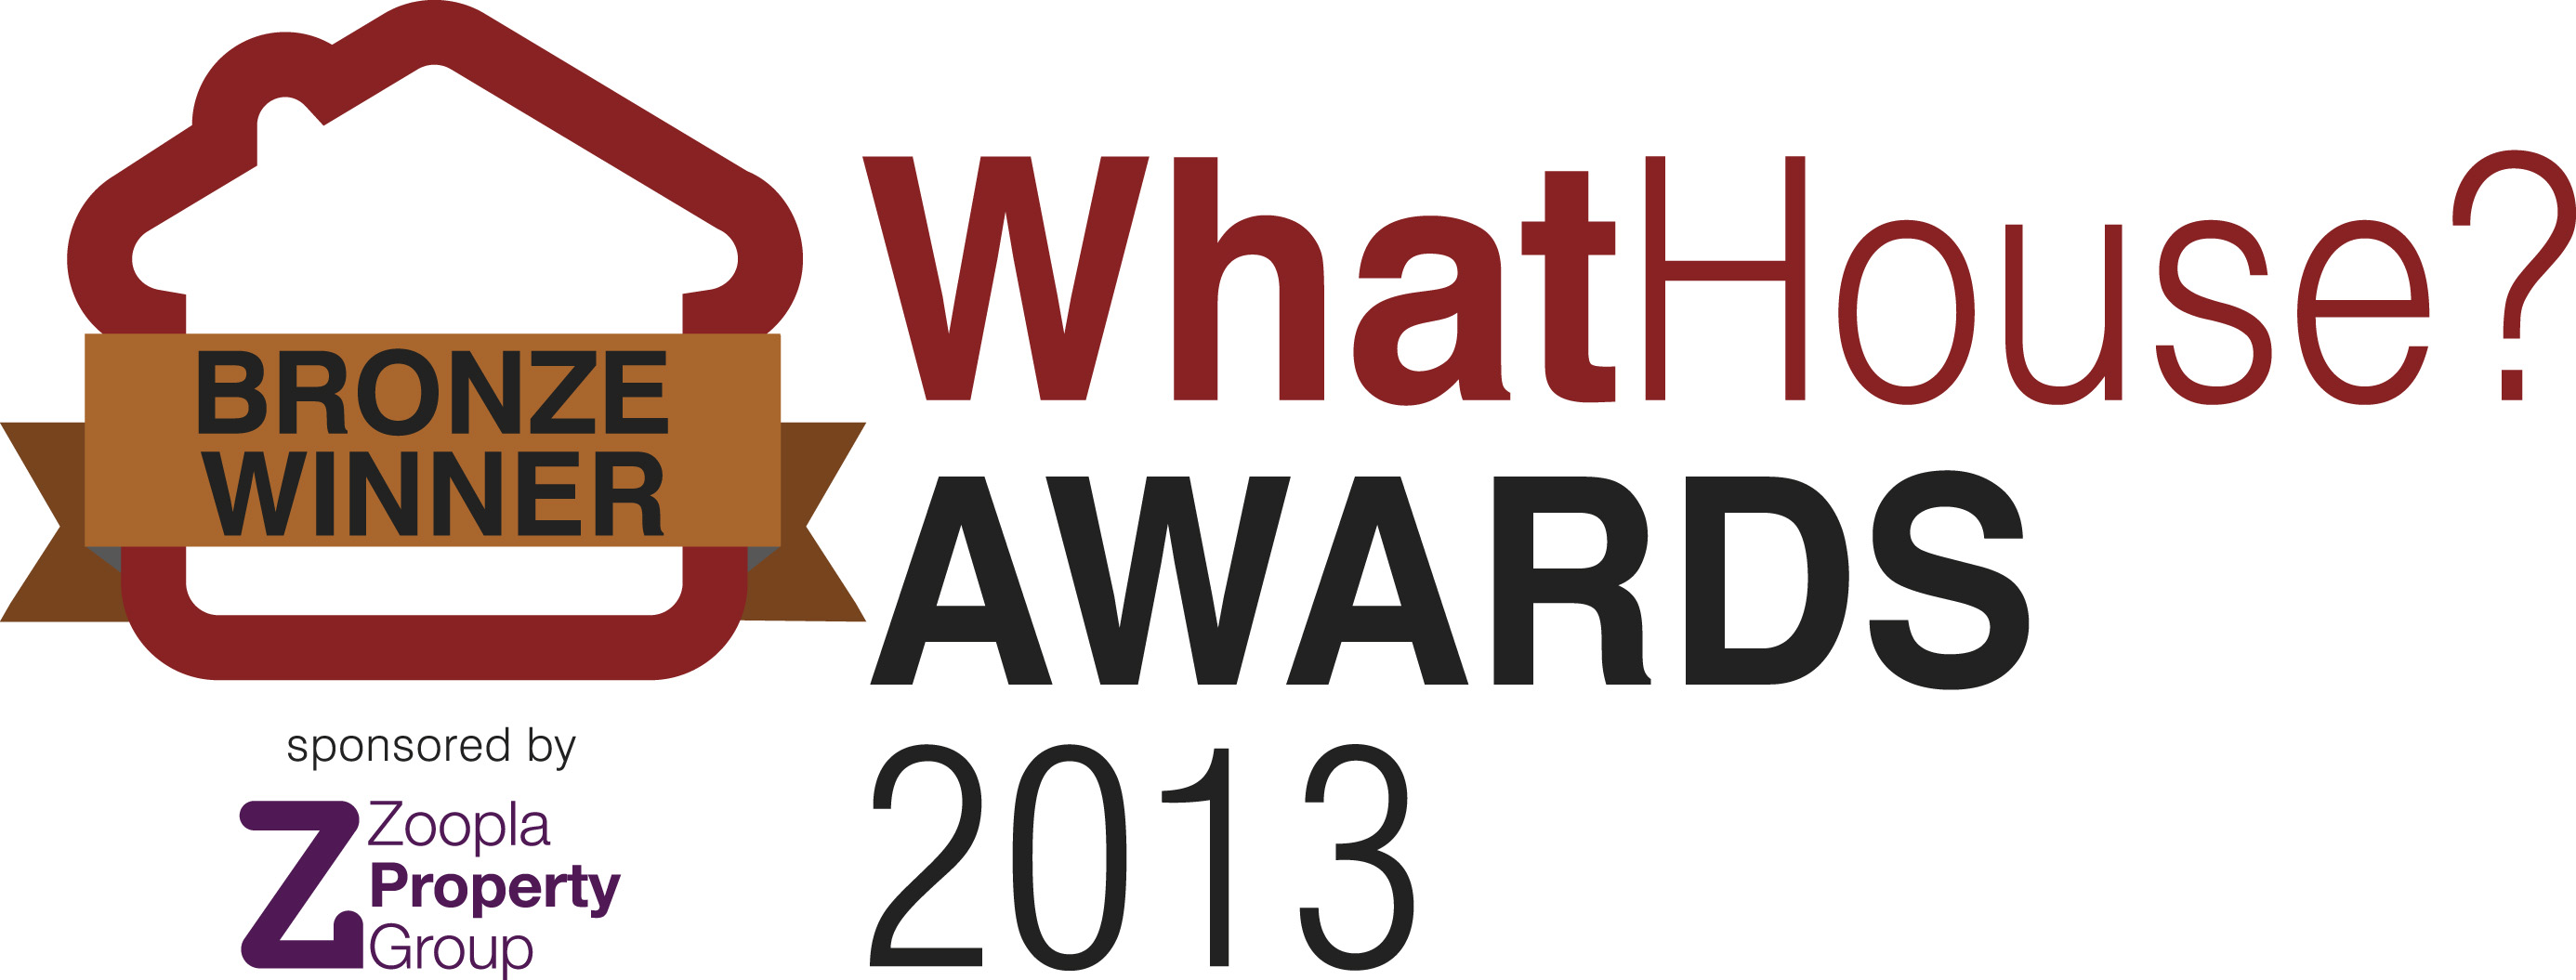 WhatHouse? Awards Winner Bronze 2013